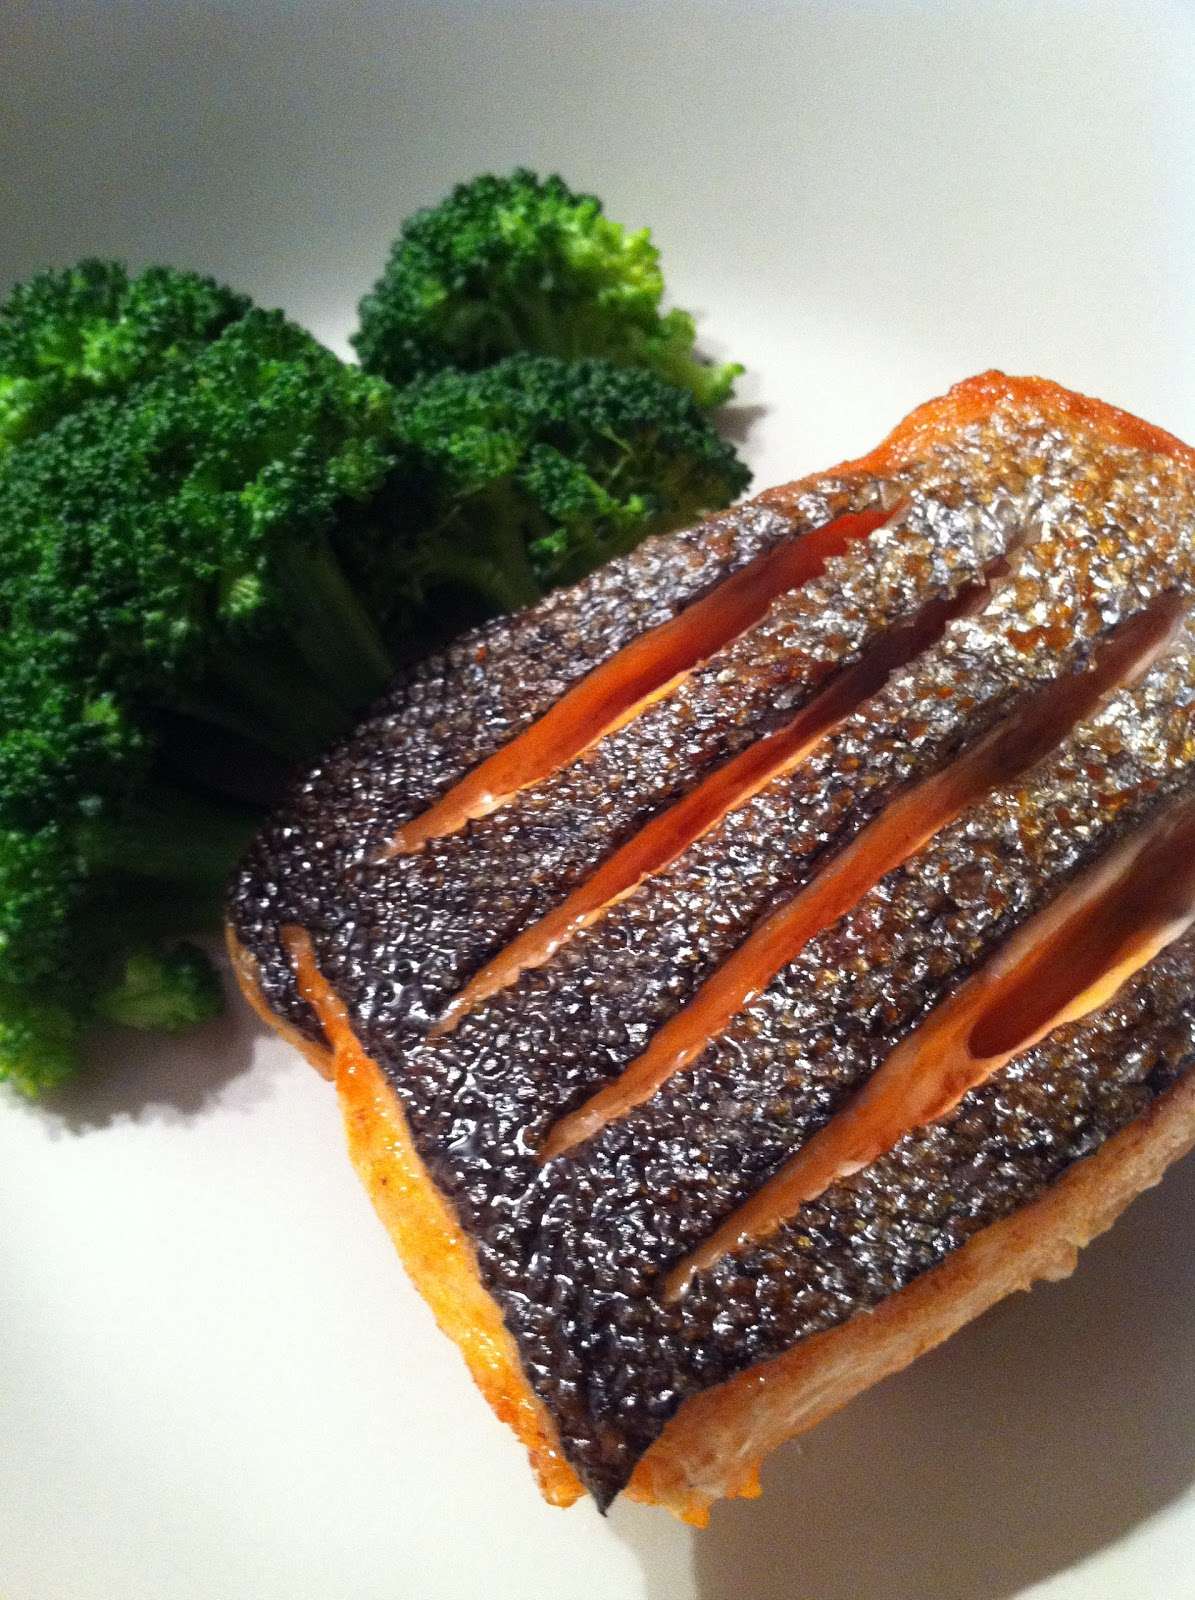 The Only Difficult Part Of This Recipe Is Having To Cut Through The Salmon  Skin Watching The Way Gordon Ramsay